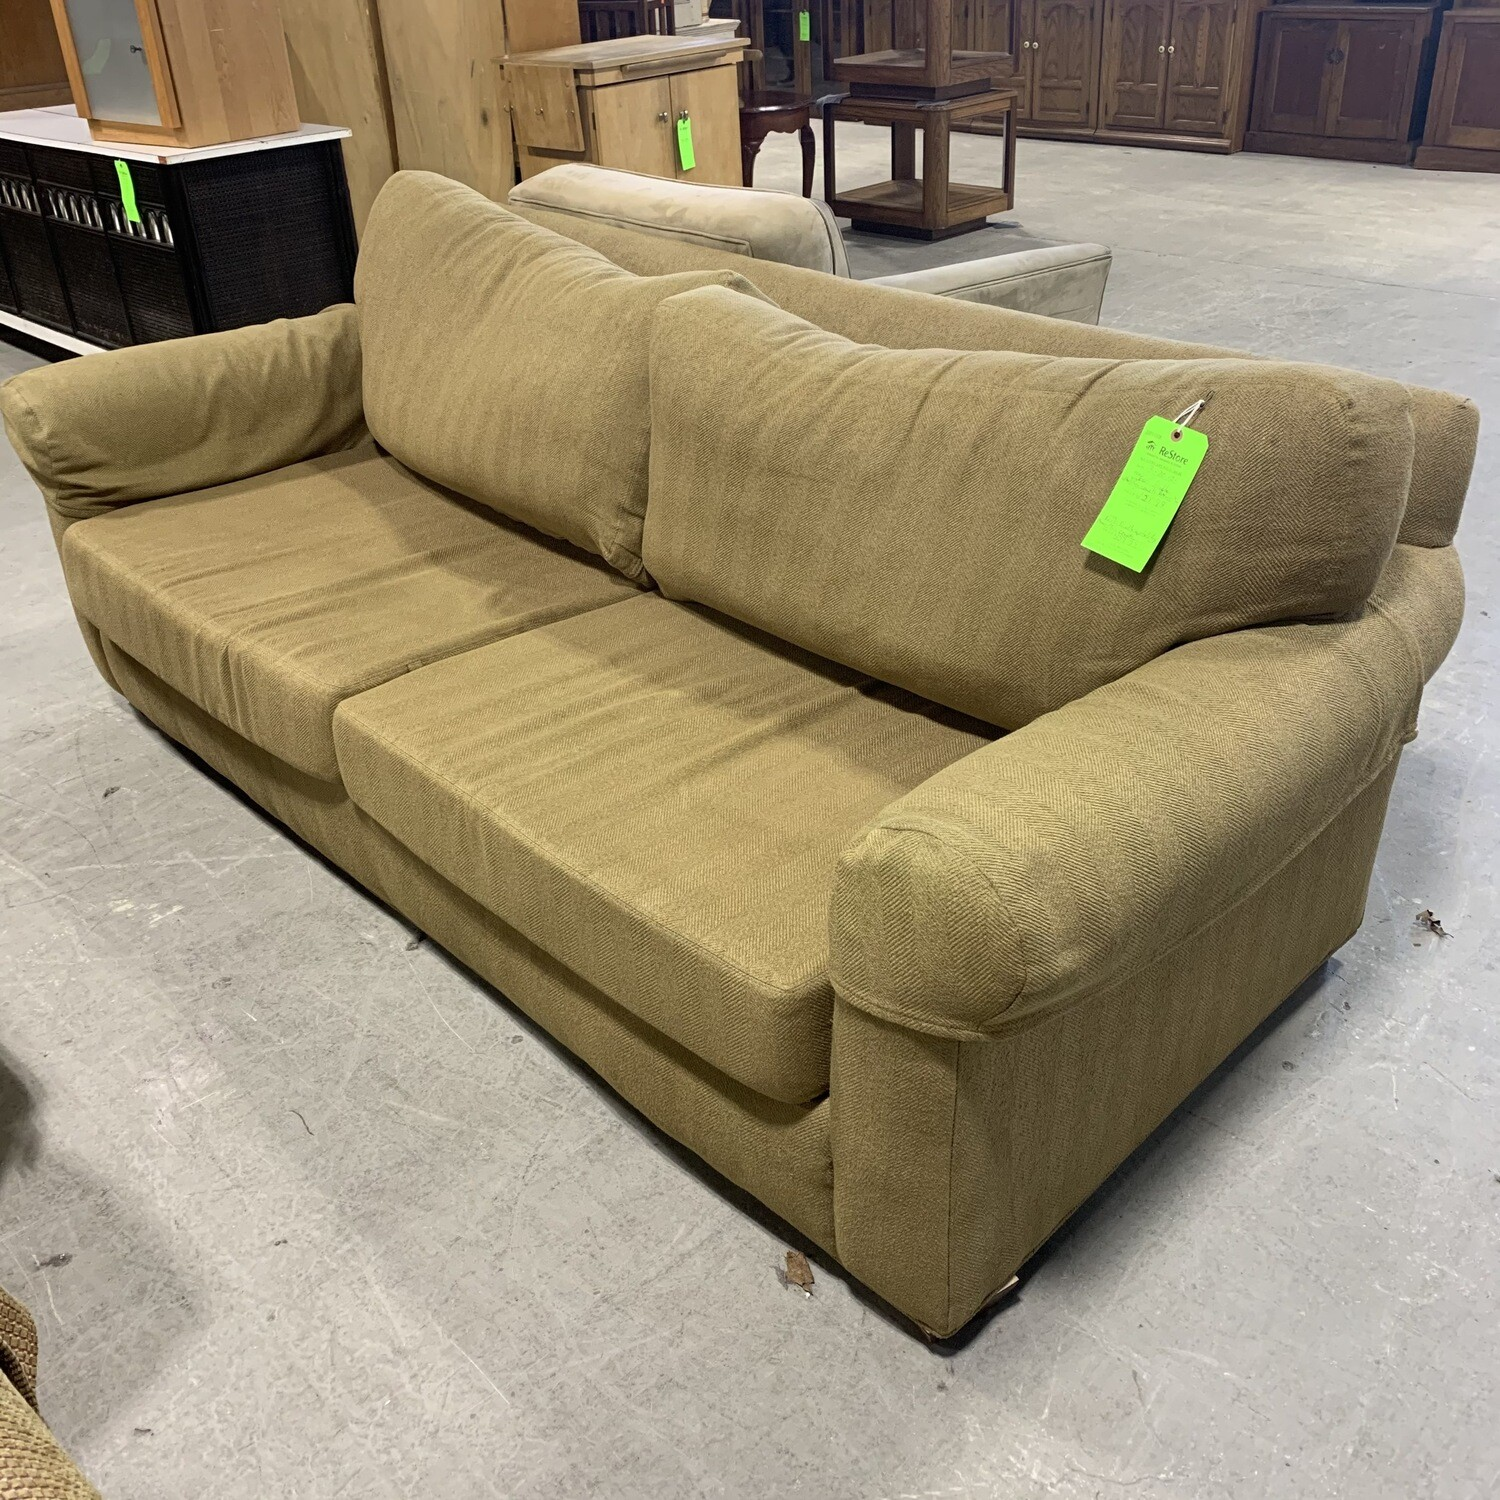 Earth Friendly Upholstery Couch Brown/Tan